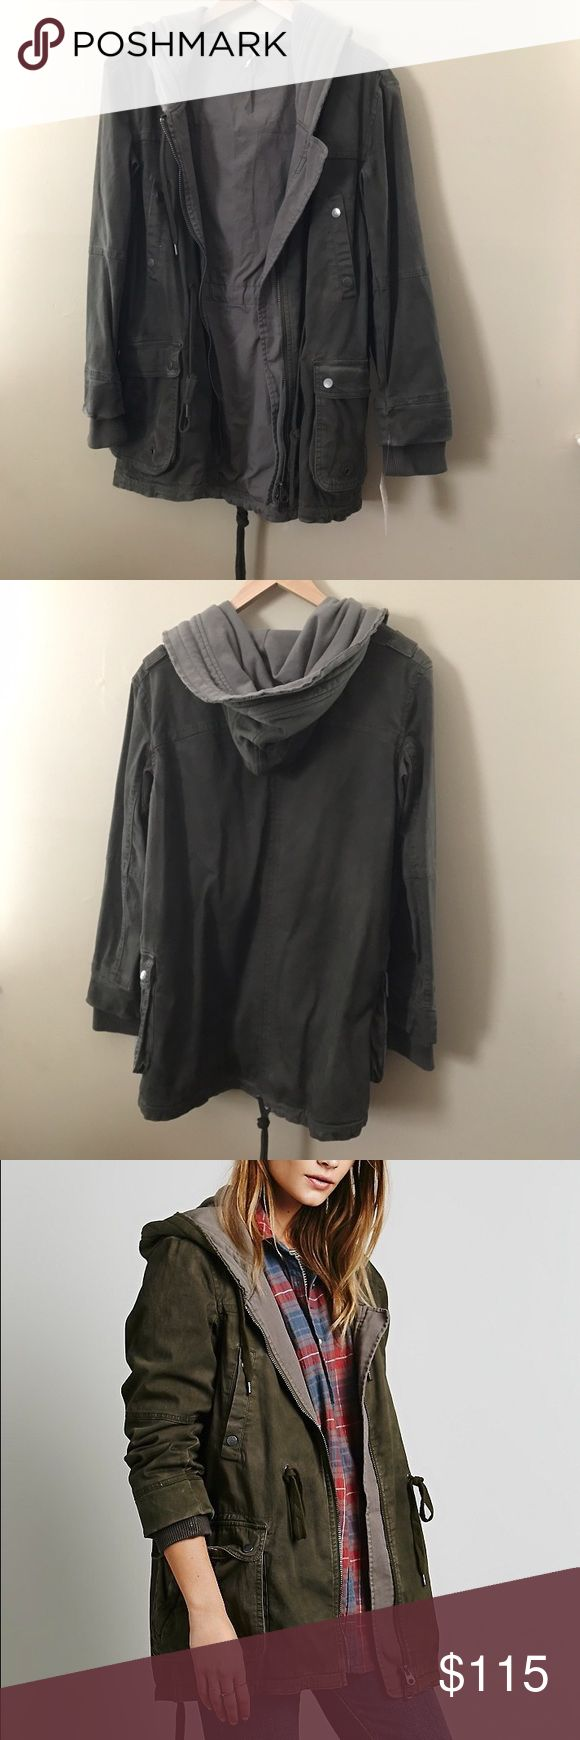 Free People - Solid Knit Mixed Cargo Army Jacket Free People - Solid Knit Mixed Cargo Army Jacket • Size XS • New with tags • Dark Olive color      Revolve clothing , Nordstrom , Shop bop , anthropologie , Urban Outfitters , Nasty Gal , ASOS ( stores for views ) Free People Jackets & Coats Utility Jackets